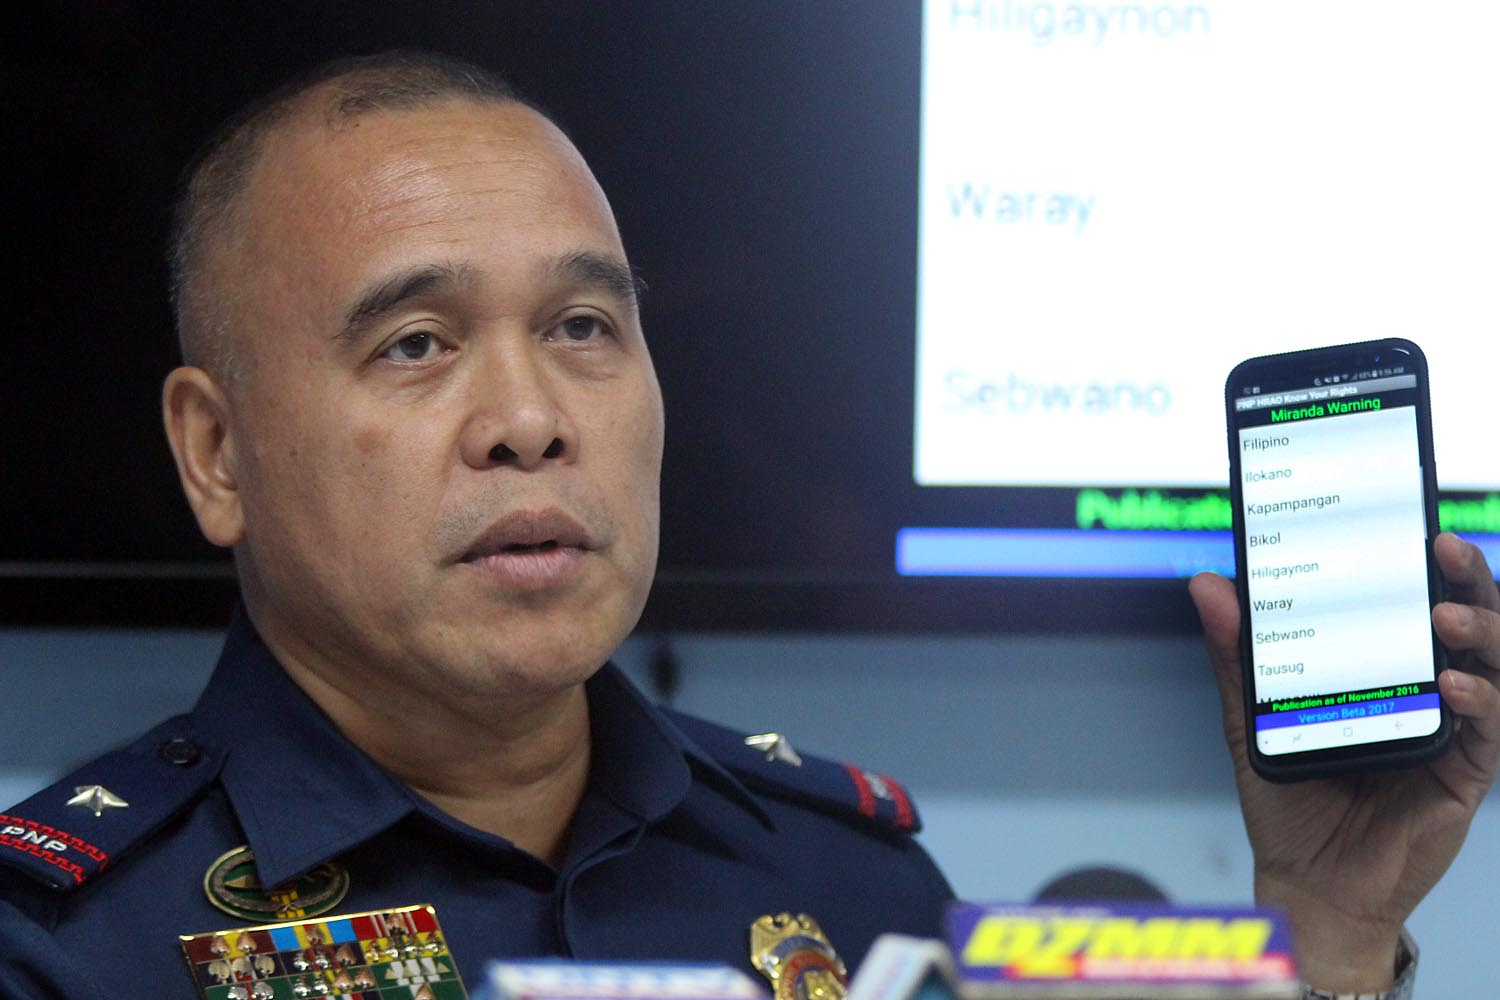 KNOW YOUR RIGHTS. Chief Supt. Dennis Siervo, head of the PNP Human Rights Affairs Office, talks about the Know Your Rights app during a press conference Sunday, December 4, 2017. Photo by Darren Langit/Rappler